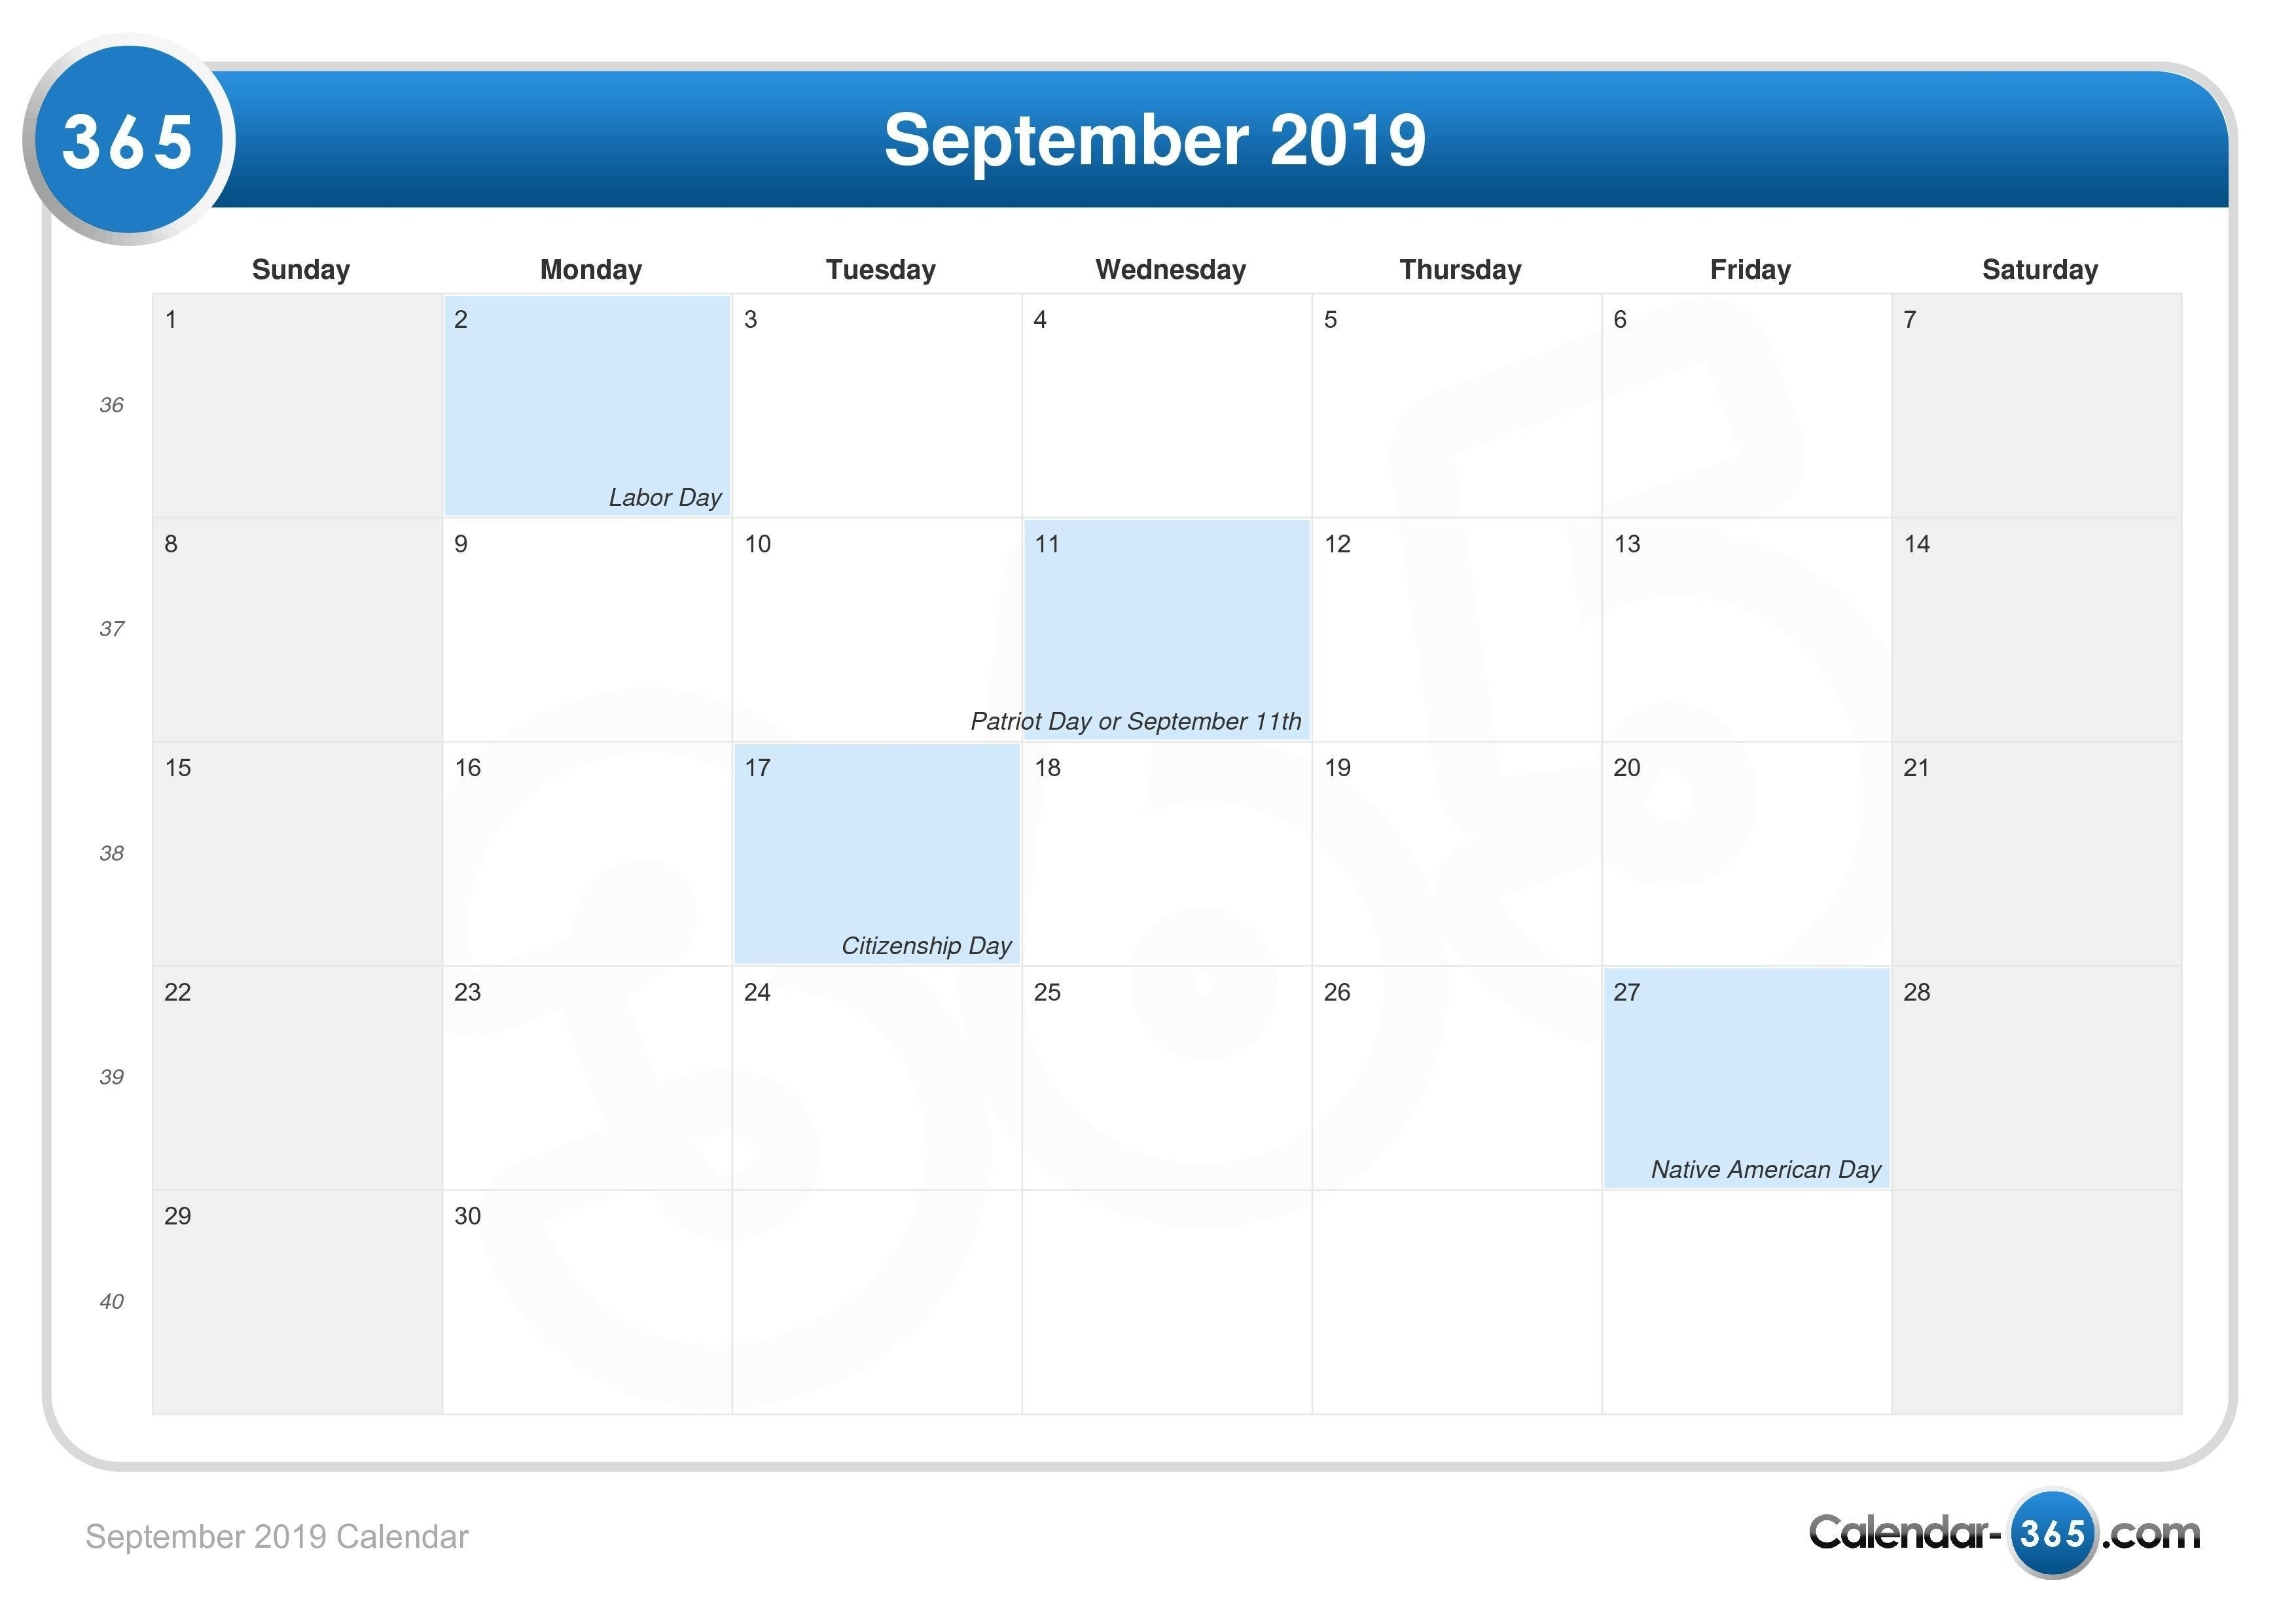 September 2019 Calendar Calendar 2019 Labor Day